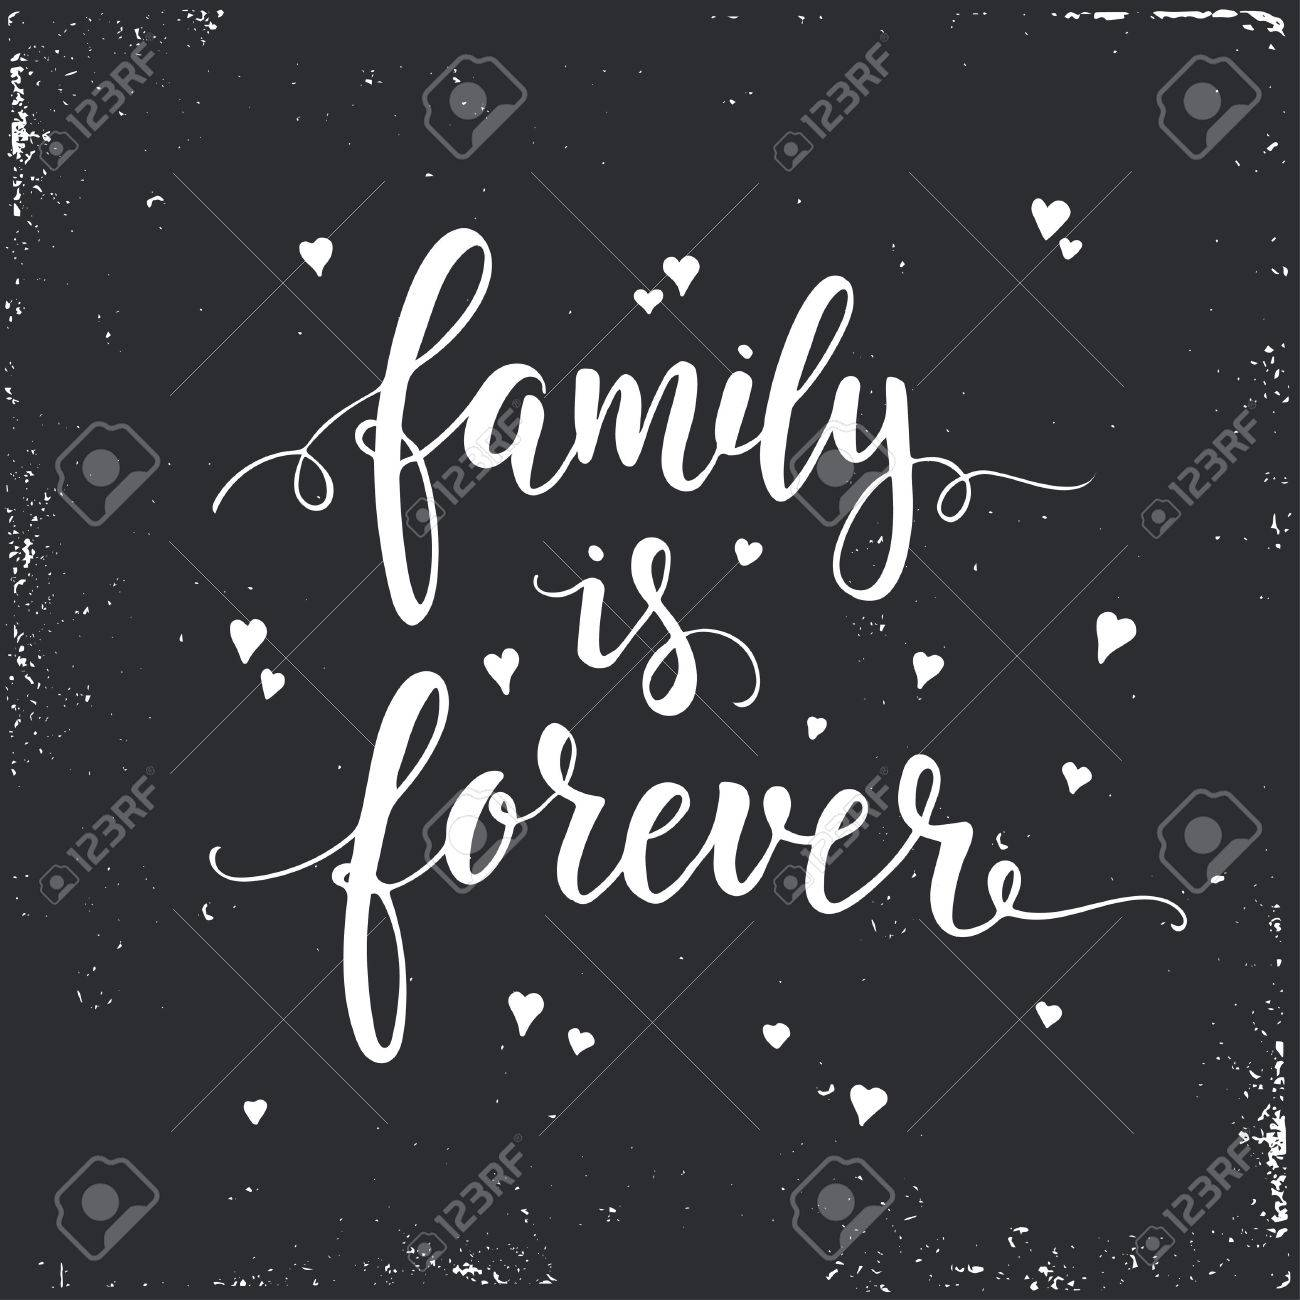 T shirt design inspiration typography - Inspirational Vector Typography Family Is Forever Hand Drawn Typography Poster T Shirt Hand Lettered Calligraphic Design